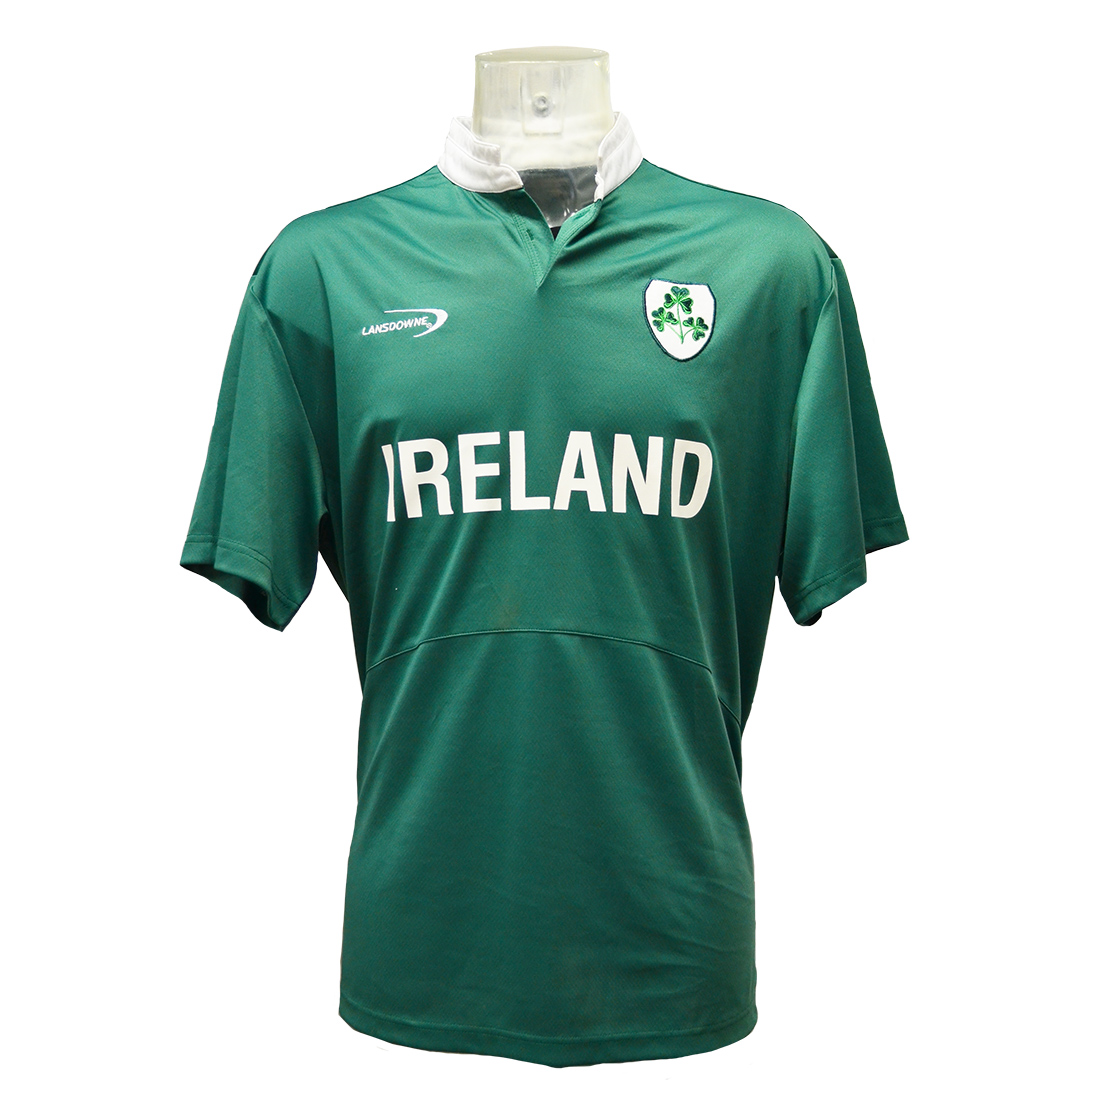 Ireland Performance Ireland Rugby Shirt (S-XXXL)